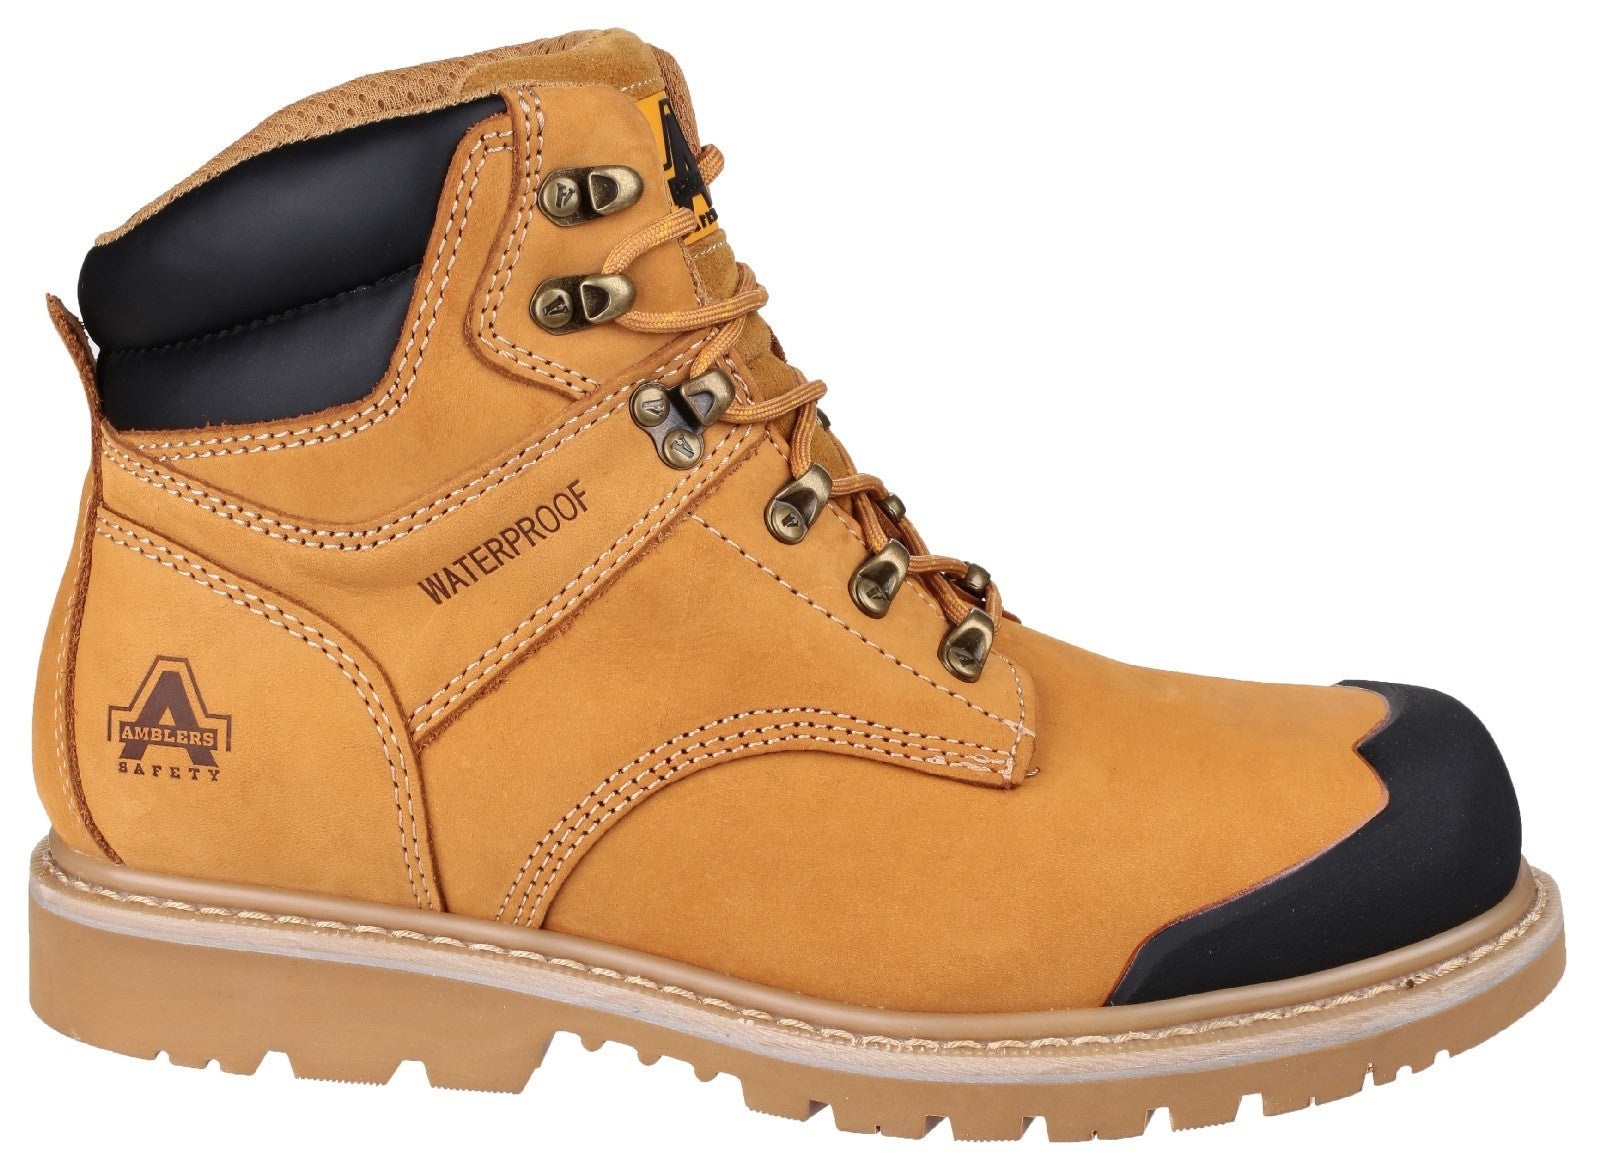 FS226 Goodyear Welted Waterproof Lace up Industrial Safety Boot